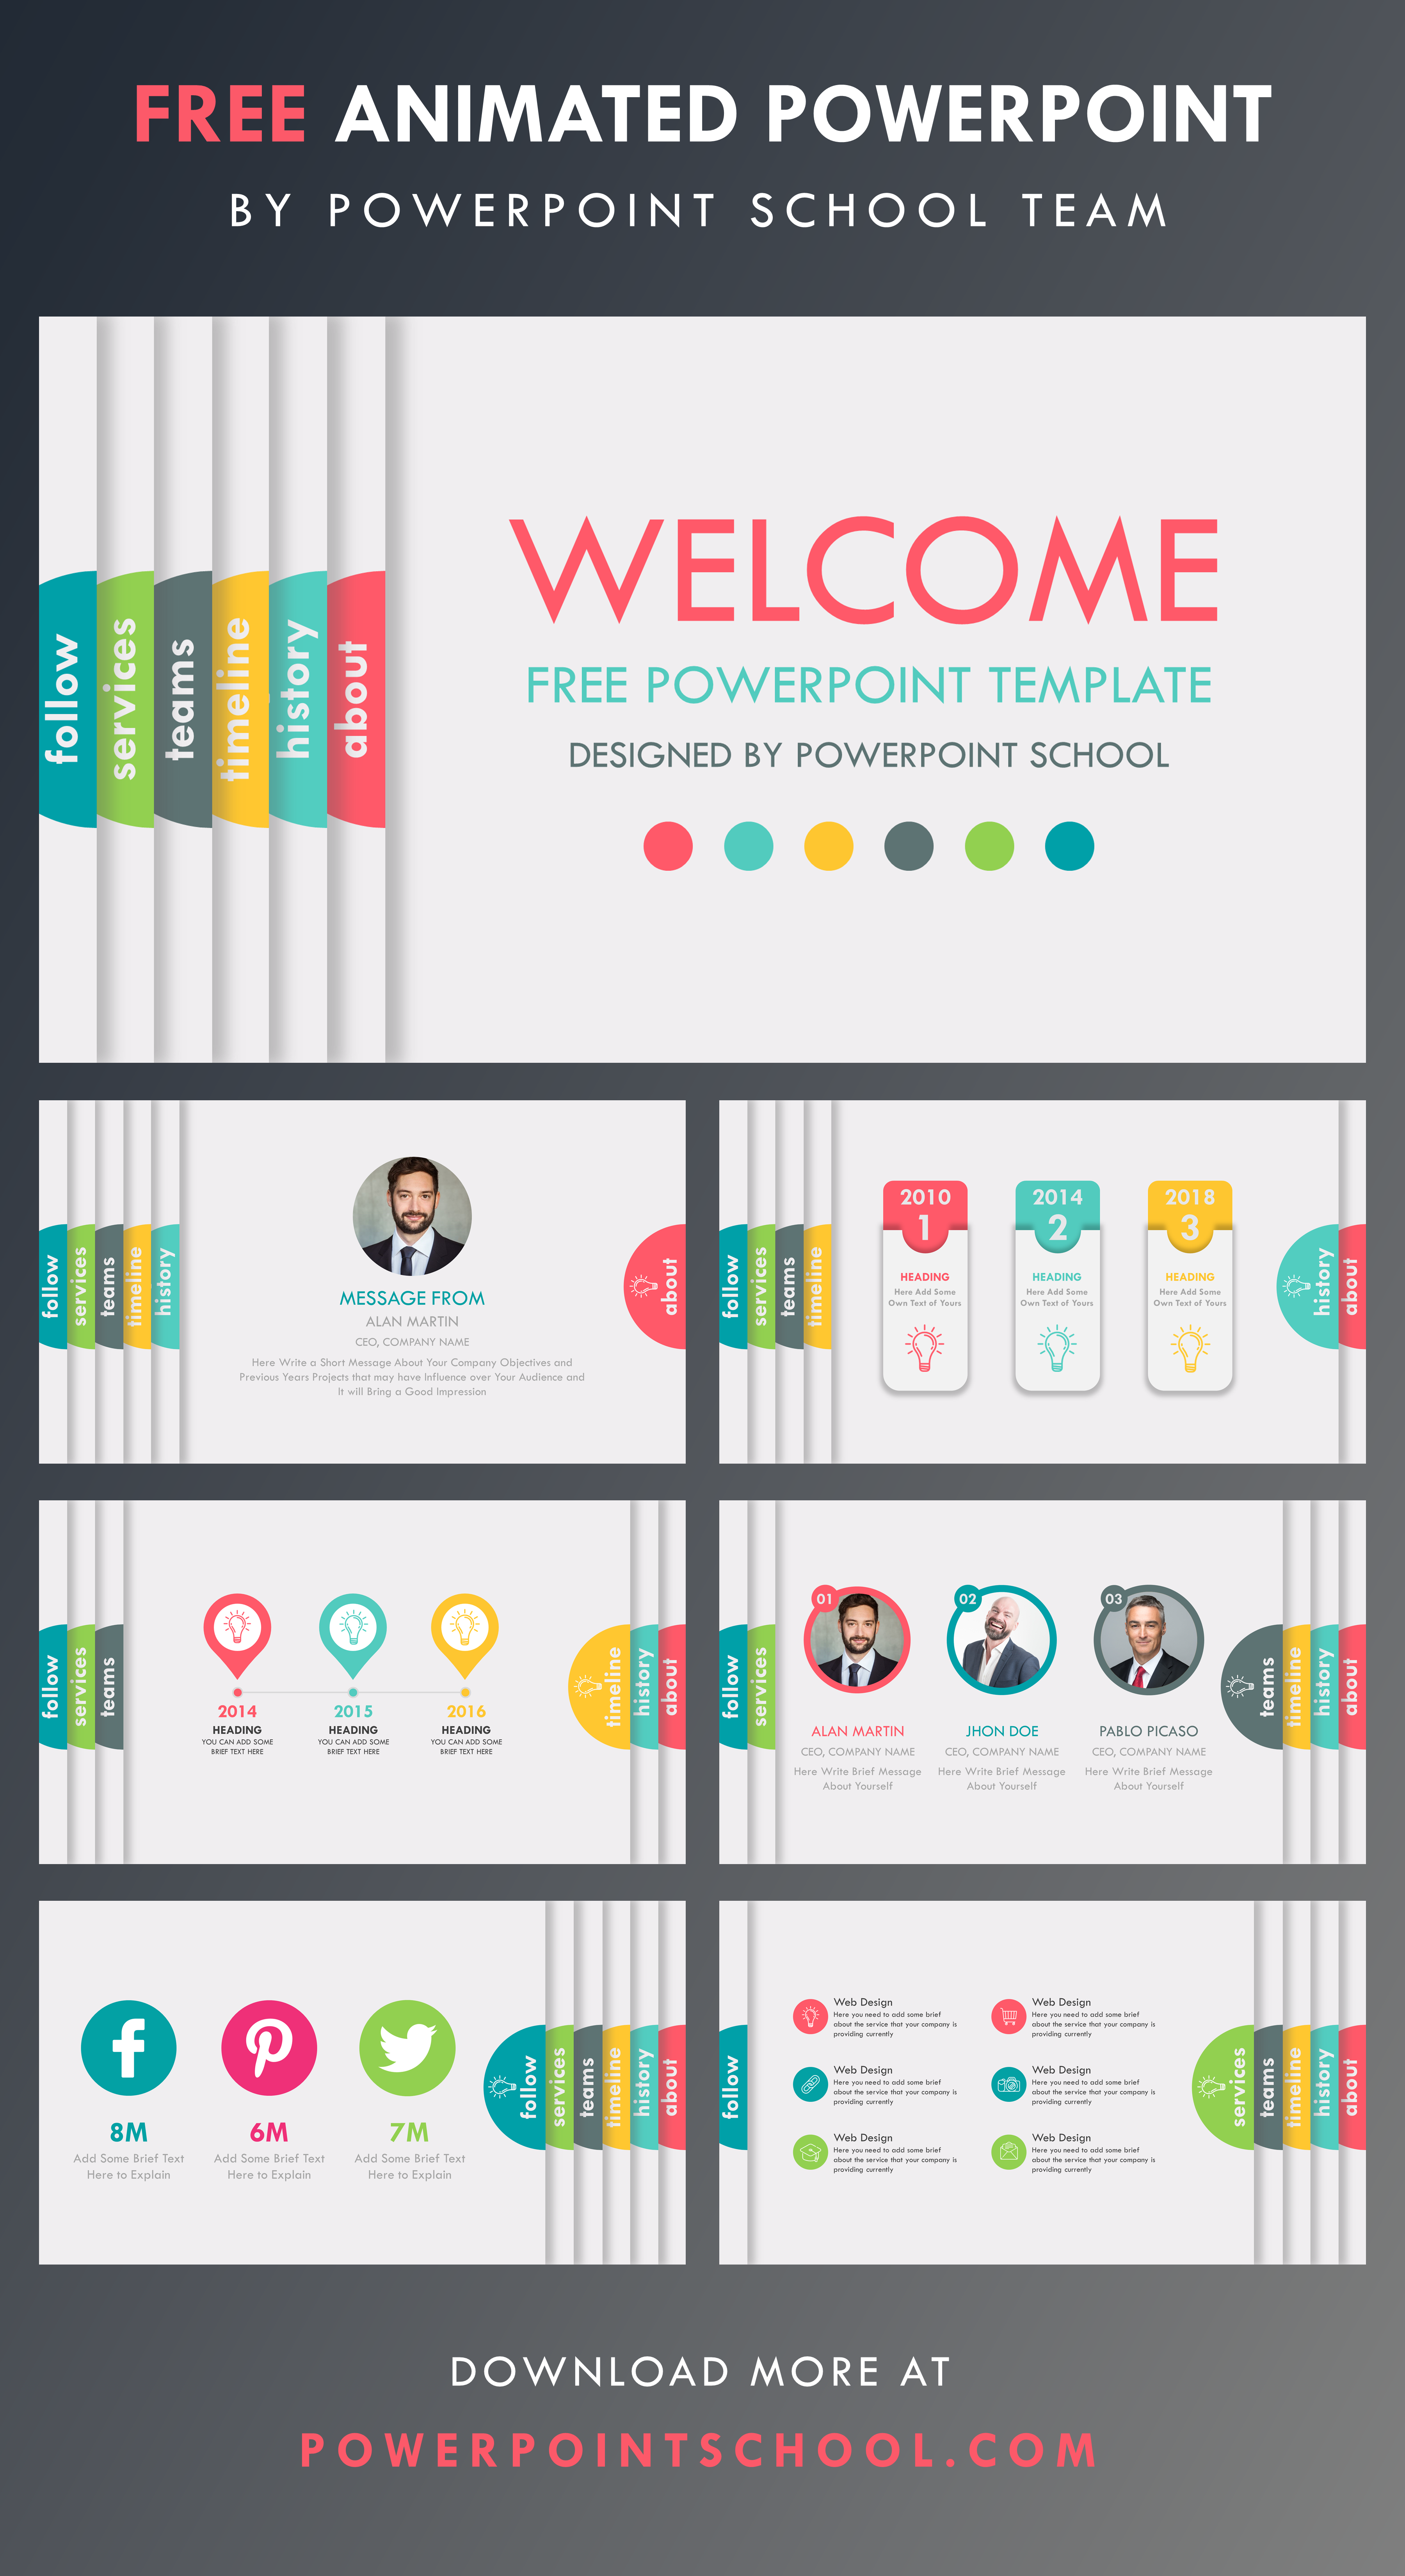 Free Powerpoint Template Infographic Powerpoint Creative Powerpoint Presentations School Powerpoint Templates